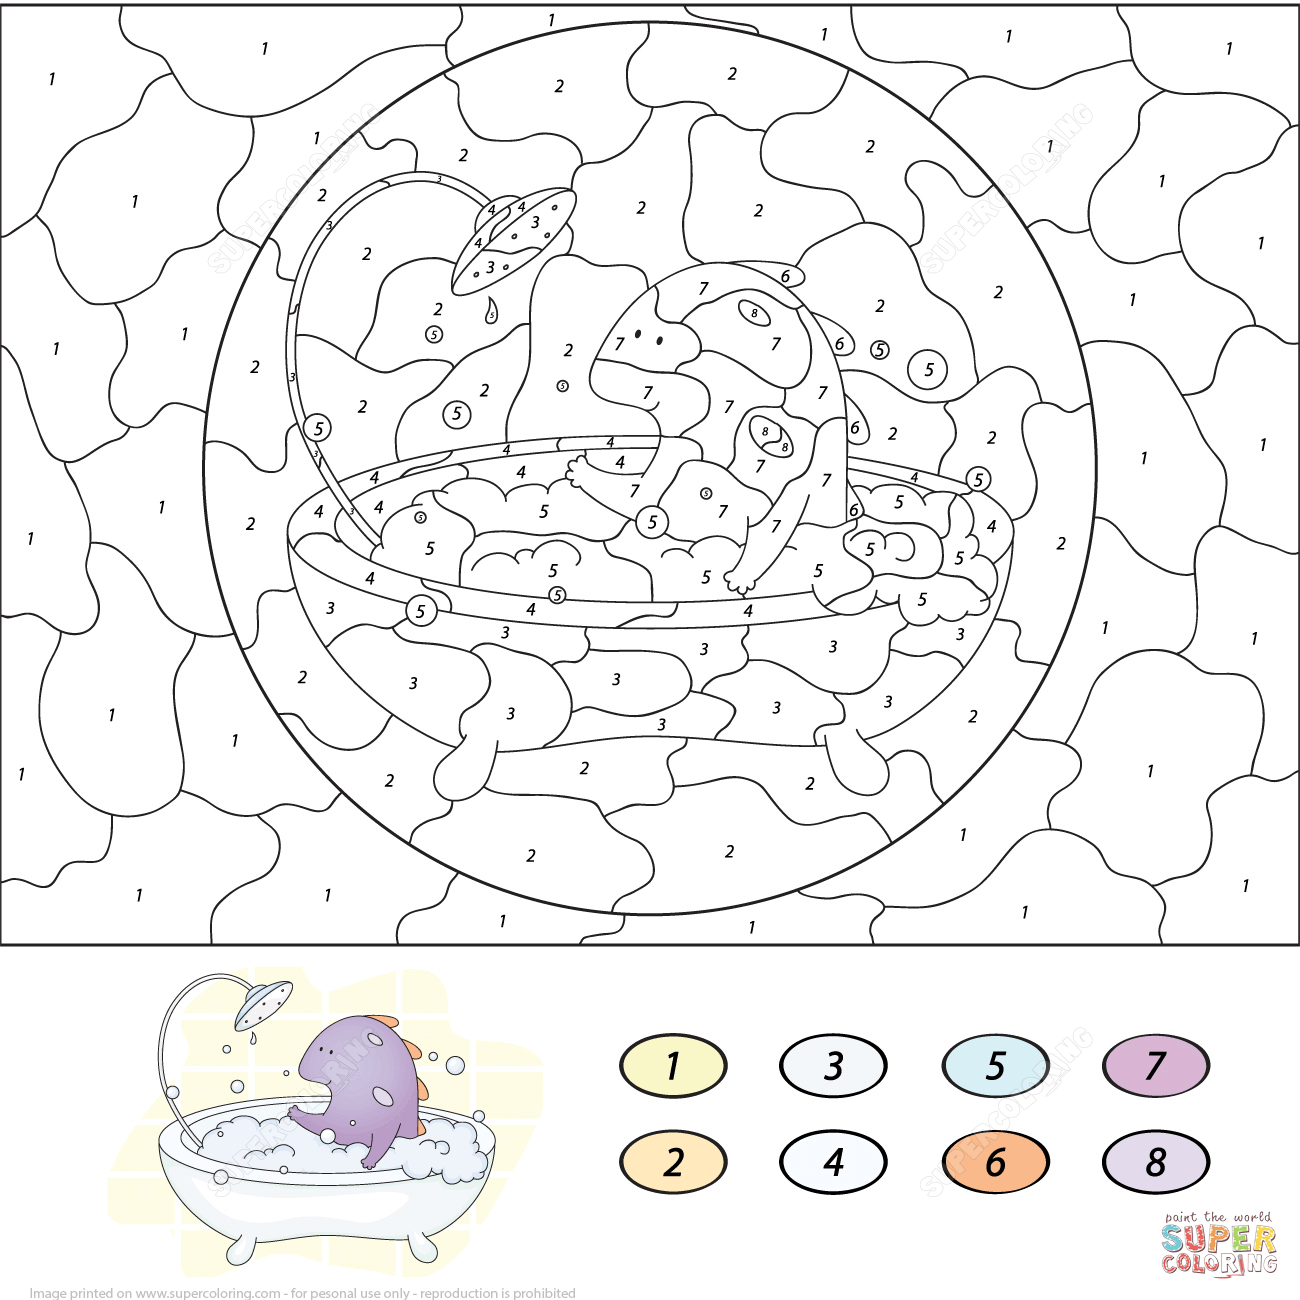 butterfly color by number coloring page dessincoloriage